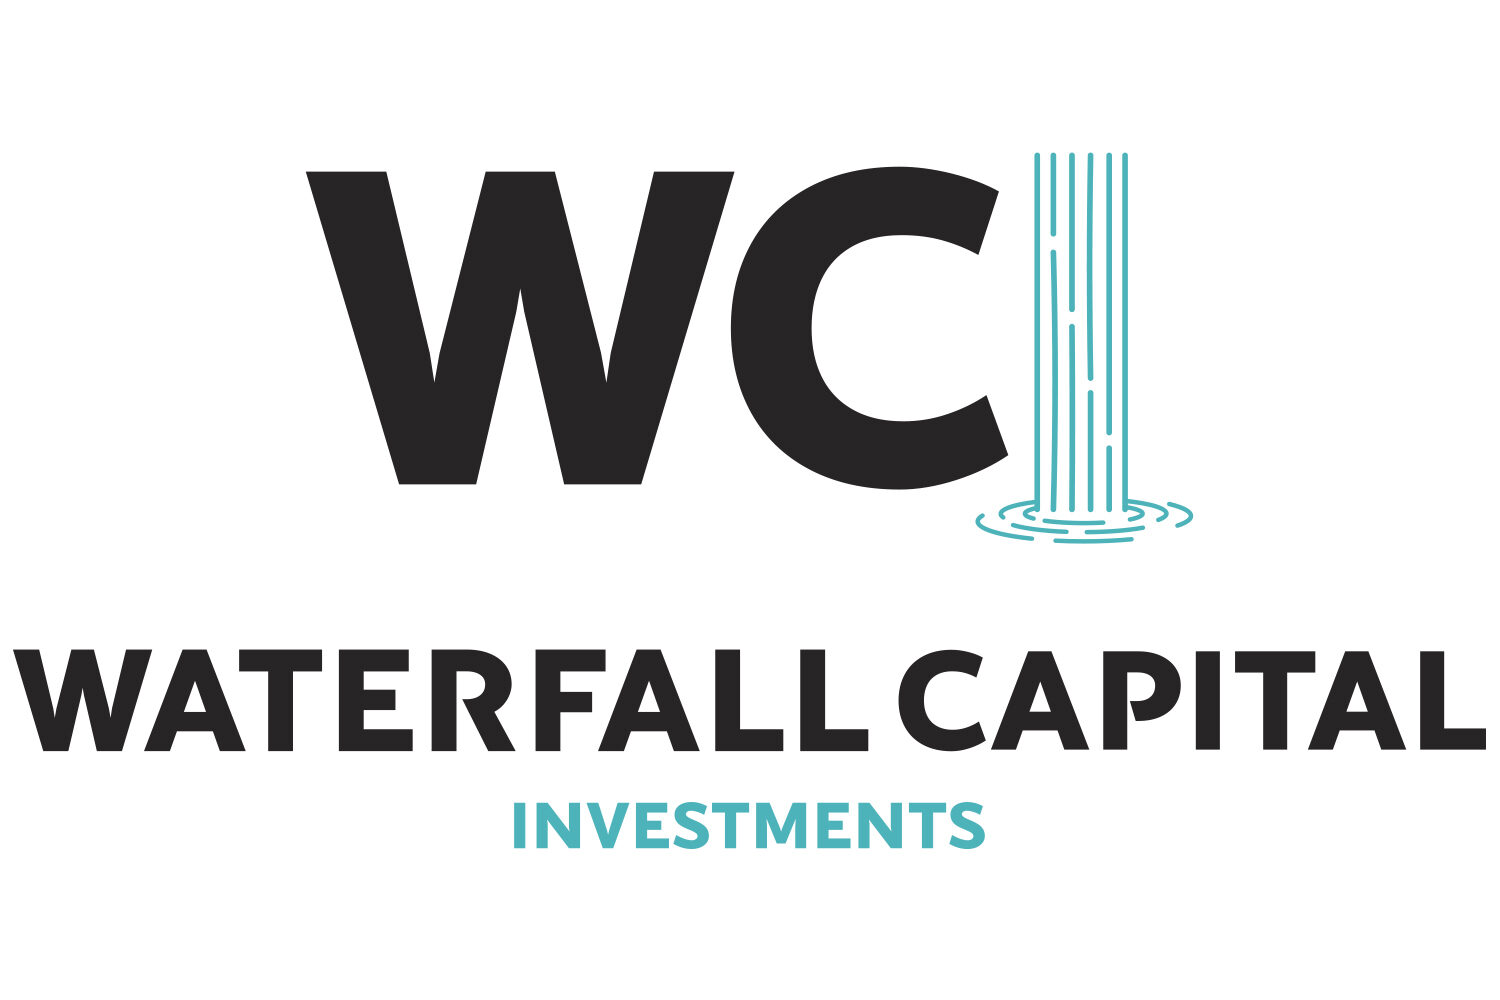 Waterfall Capital